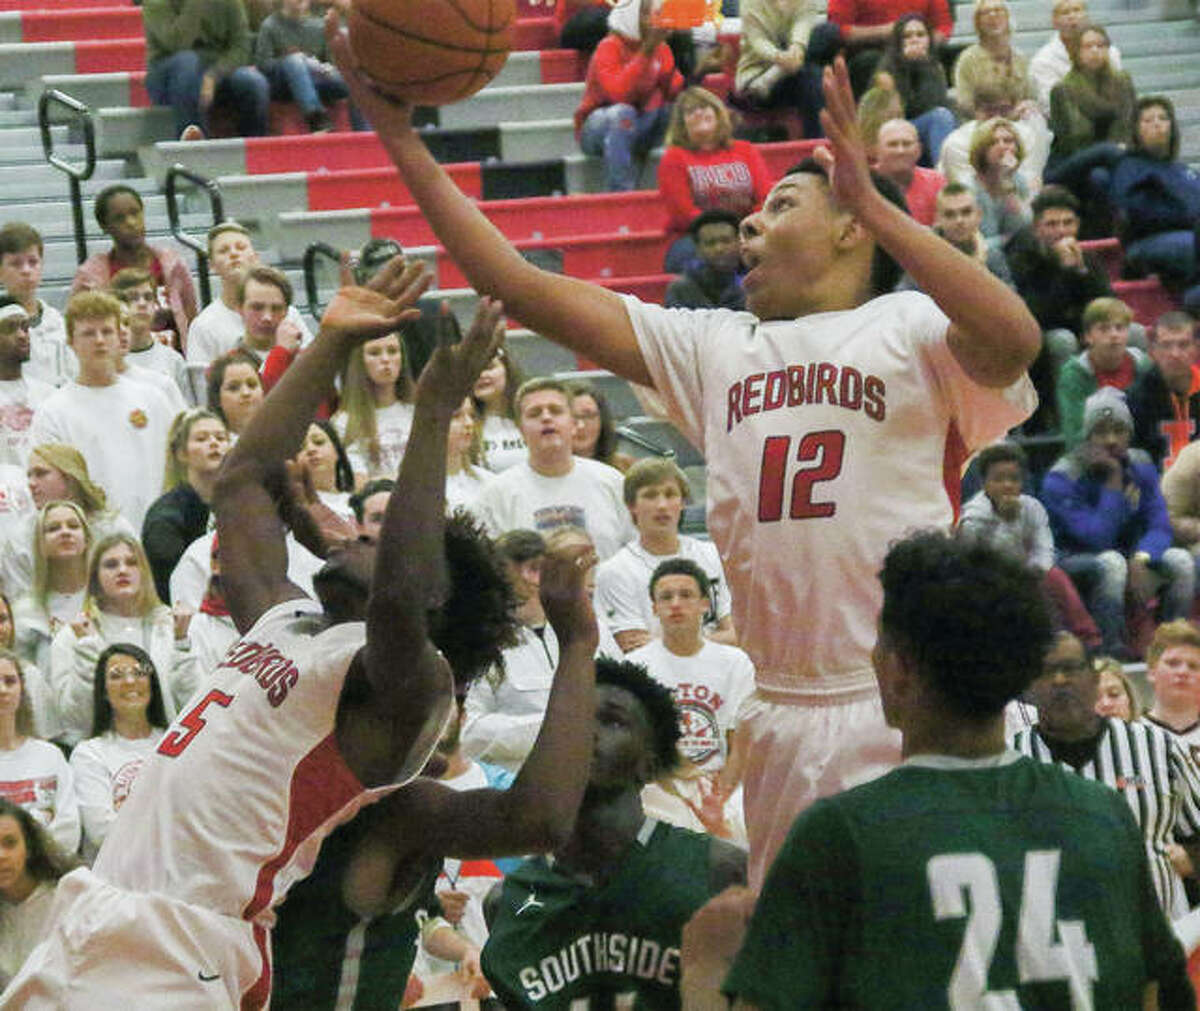 Alton's Josh Rivers (12) comes down with a rebound during the chamopionship game of the Alton Tip-Off Classic on Saturday night at Alton High in Godfrey. Rivers had 11 points in the loss that left the Redbirds with a 3-1 record.